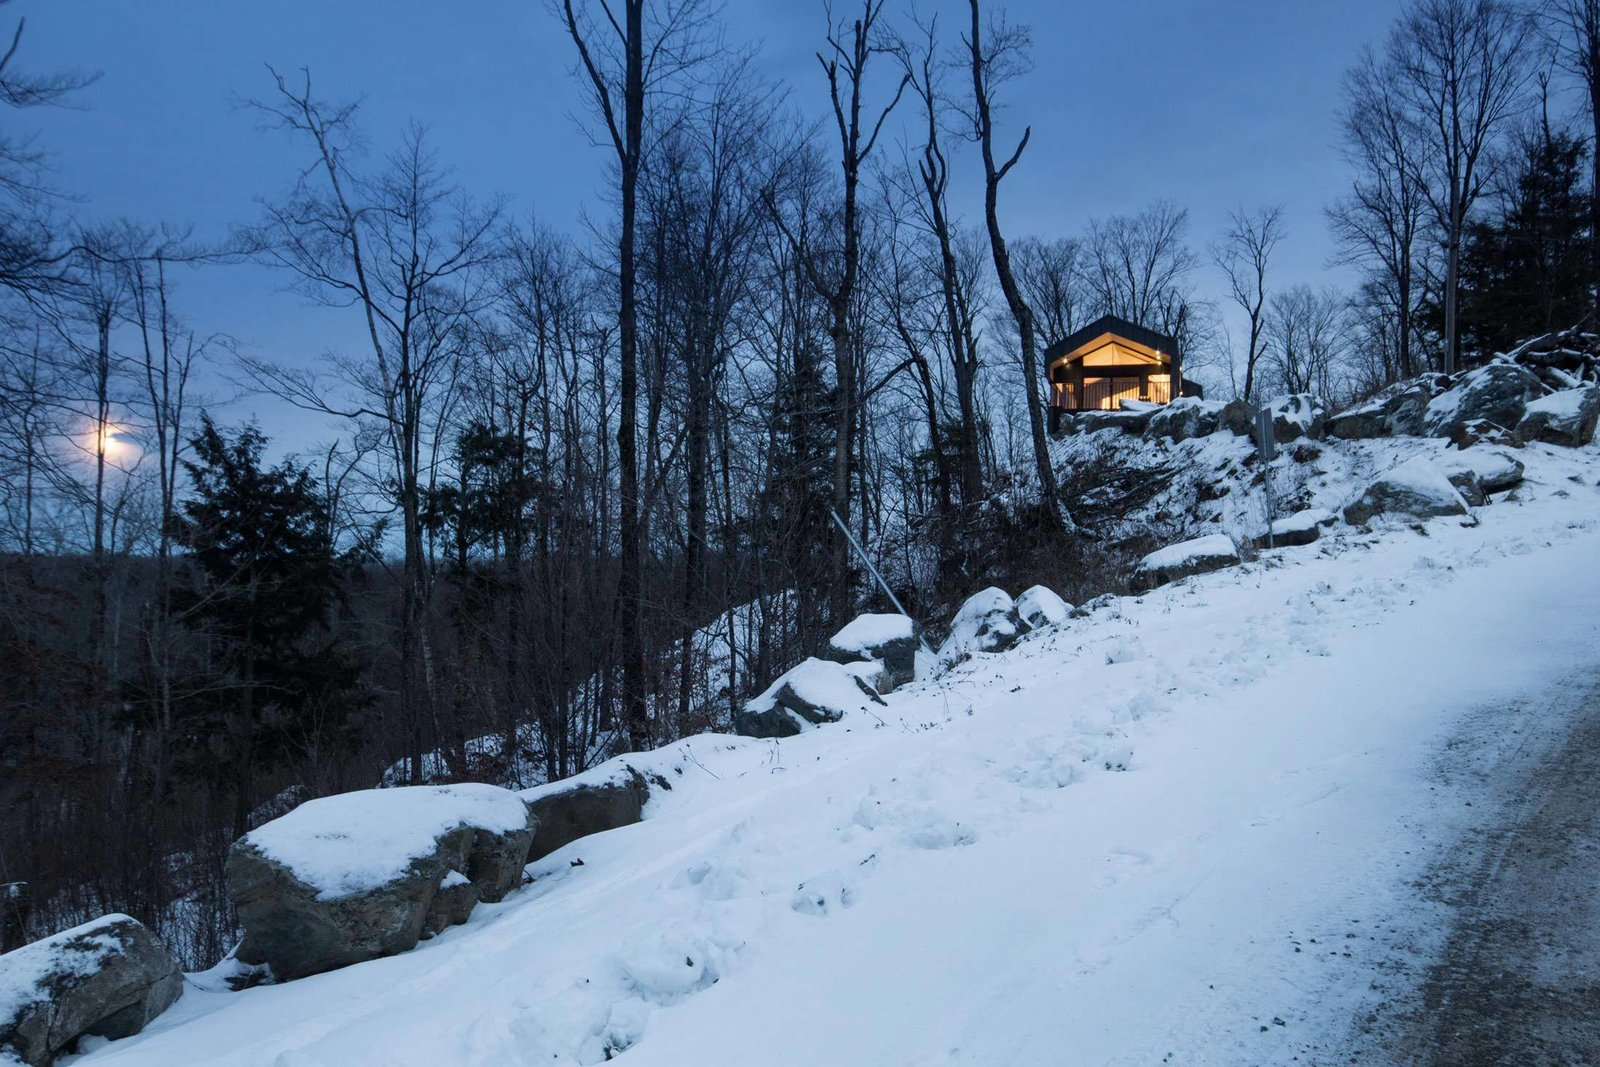 The home's elevated location means its occupants can enjoy the slow rise of the full moon while staying warm indoors.